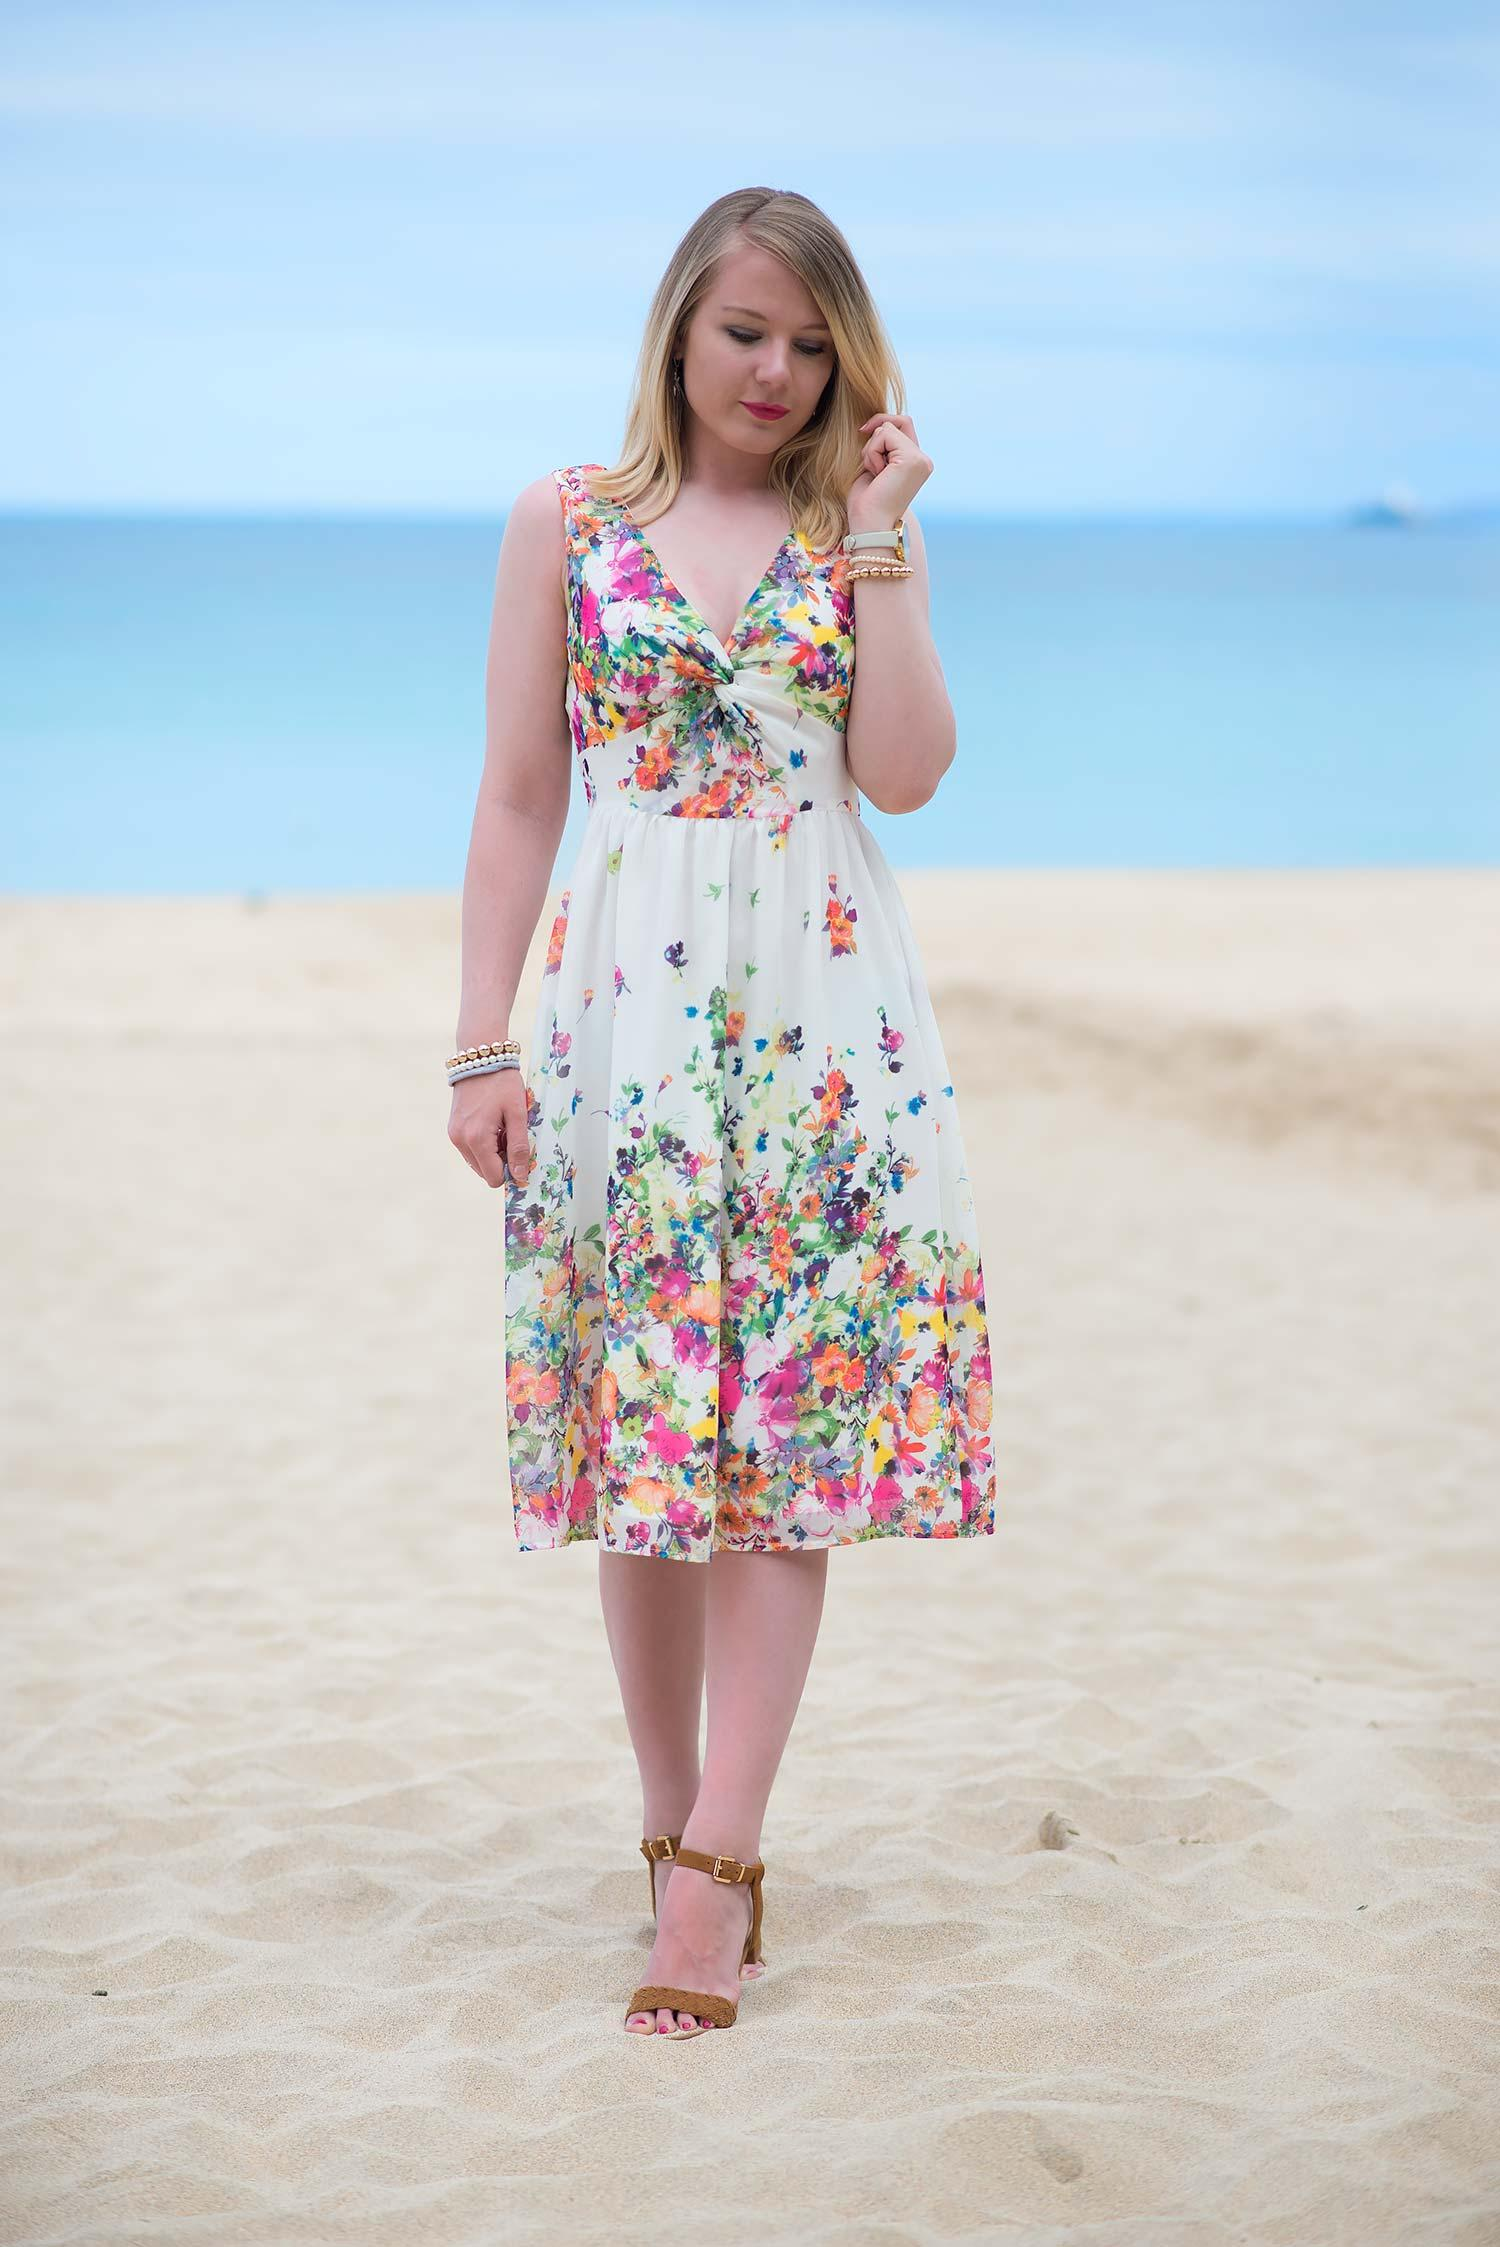 girl in white floral dress on beach